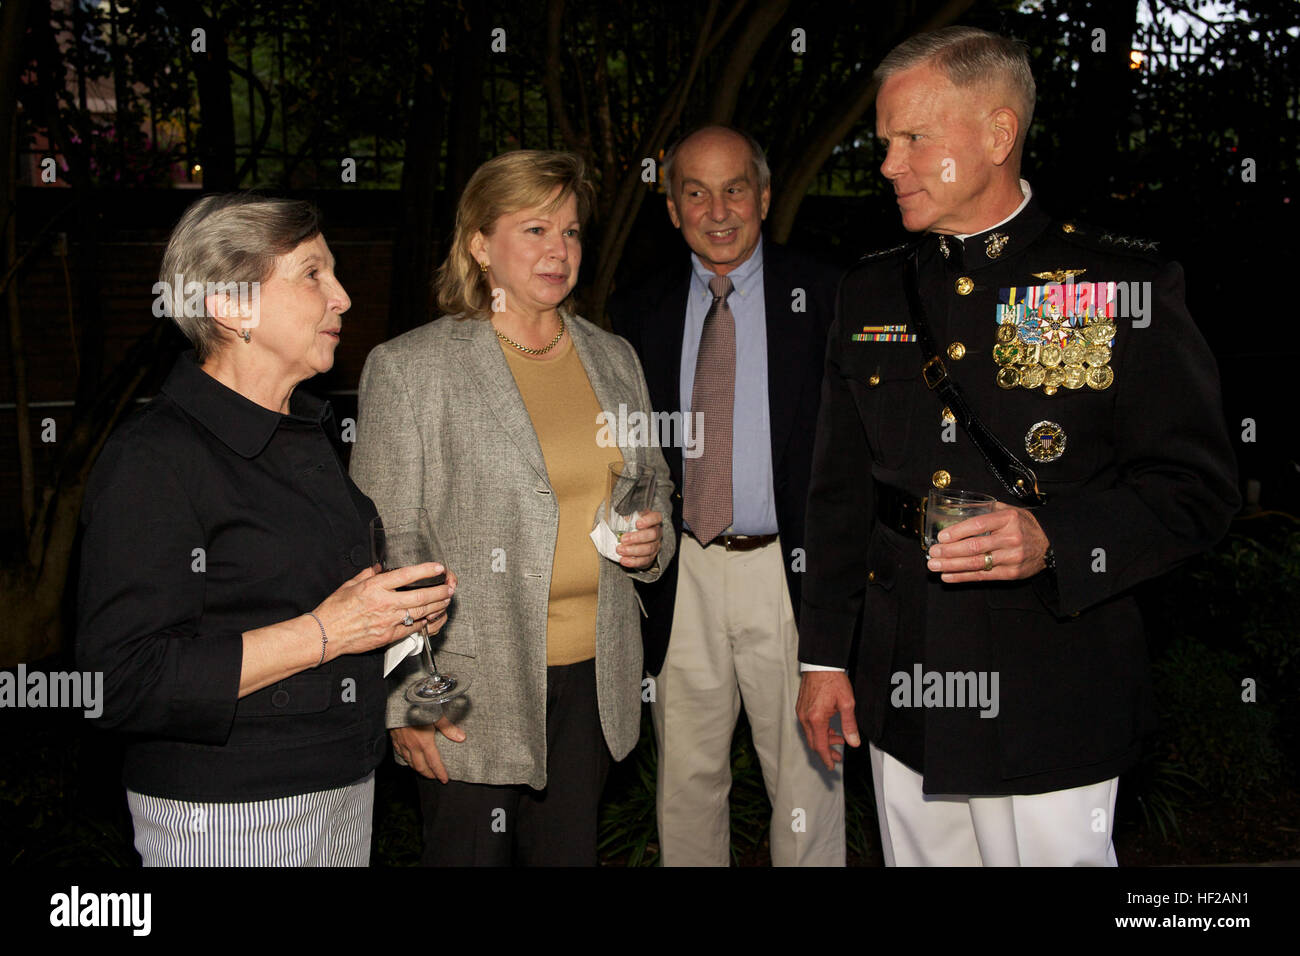 The Commandant of the U.S. Marine Corps, Gen. James F. Amos, right, speaks with guests during an Evening Parade Stock Photo